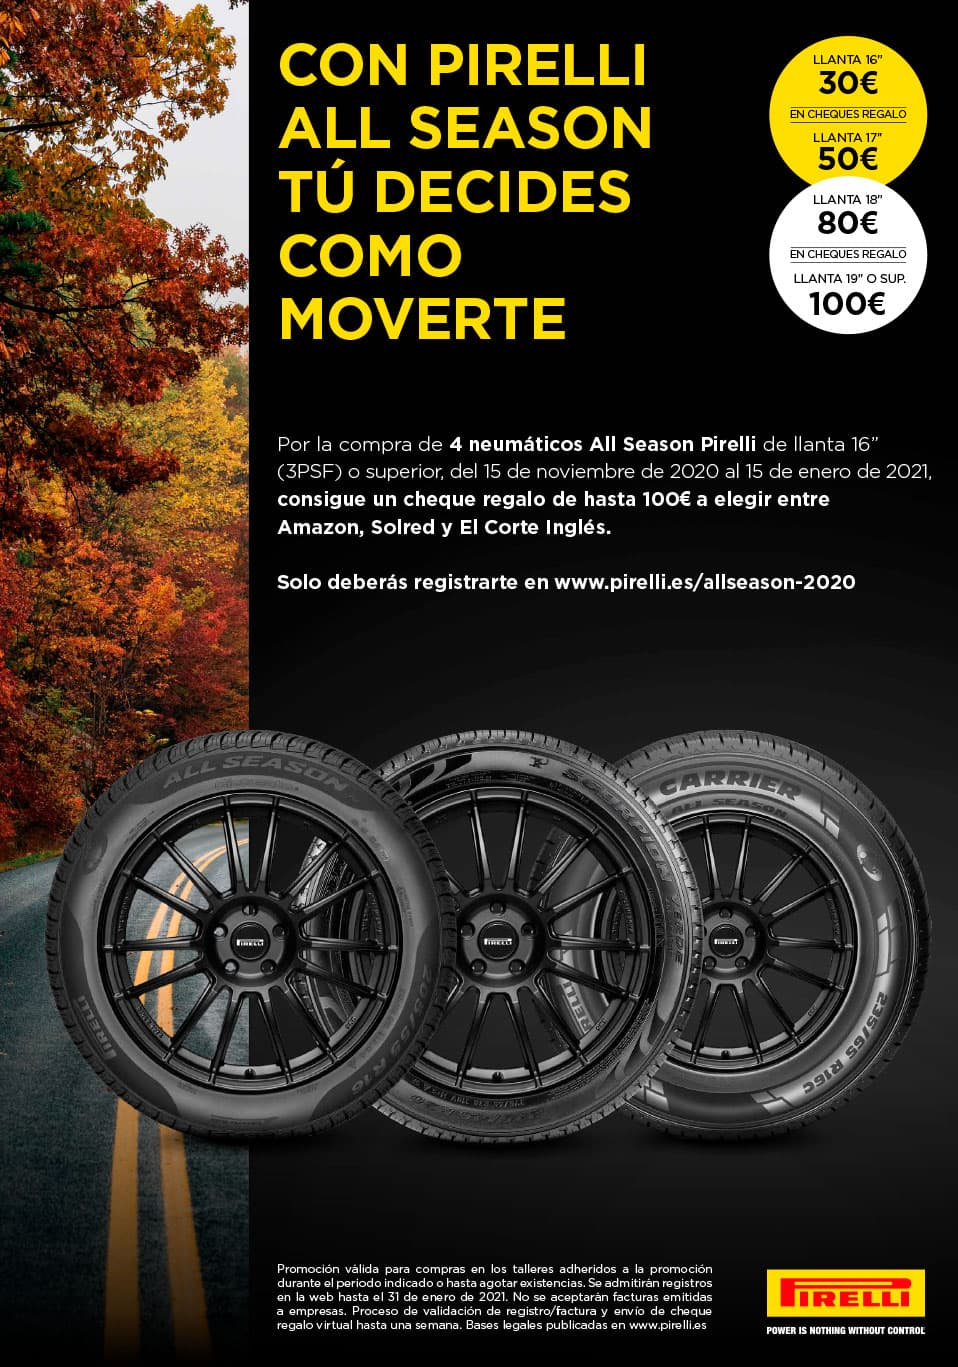 ¡Consigue un cheque regalo de hasta 100€ con Pirelli